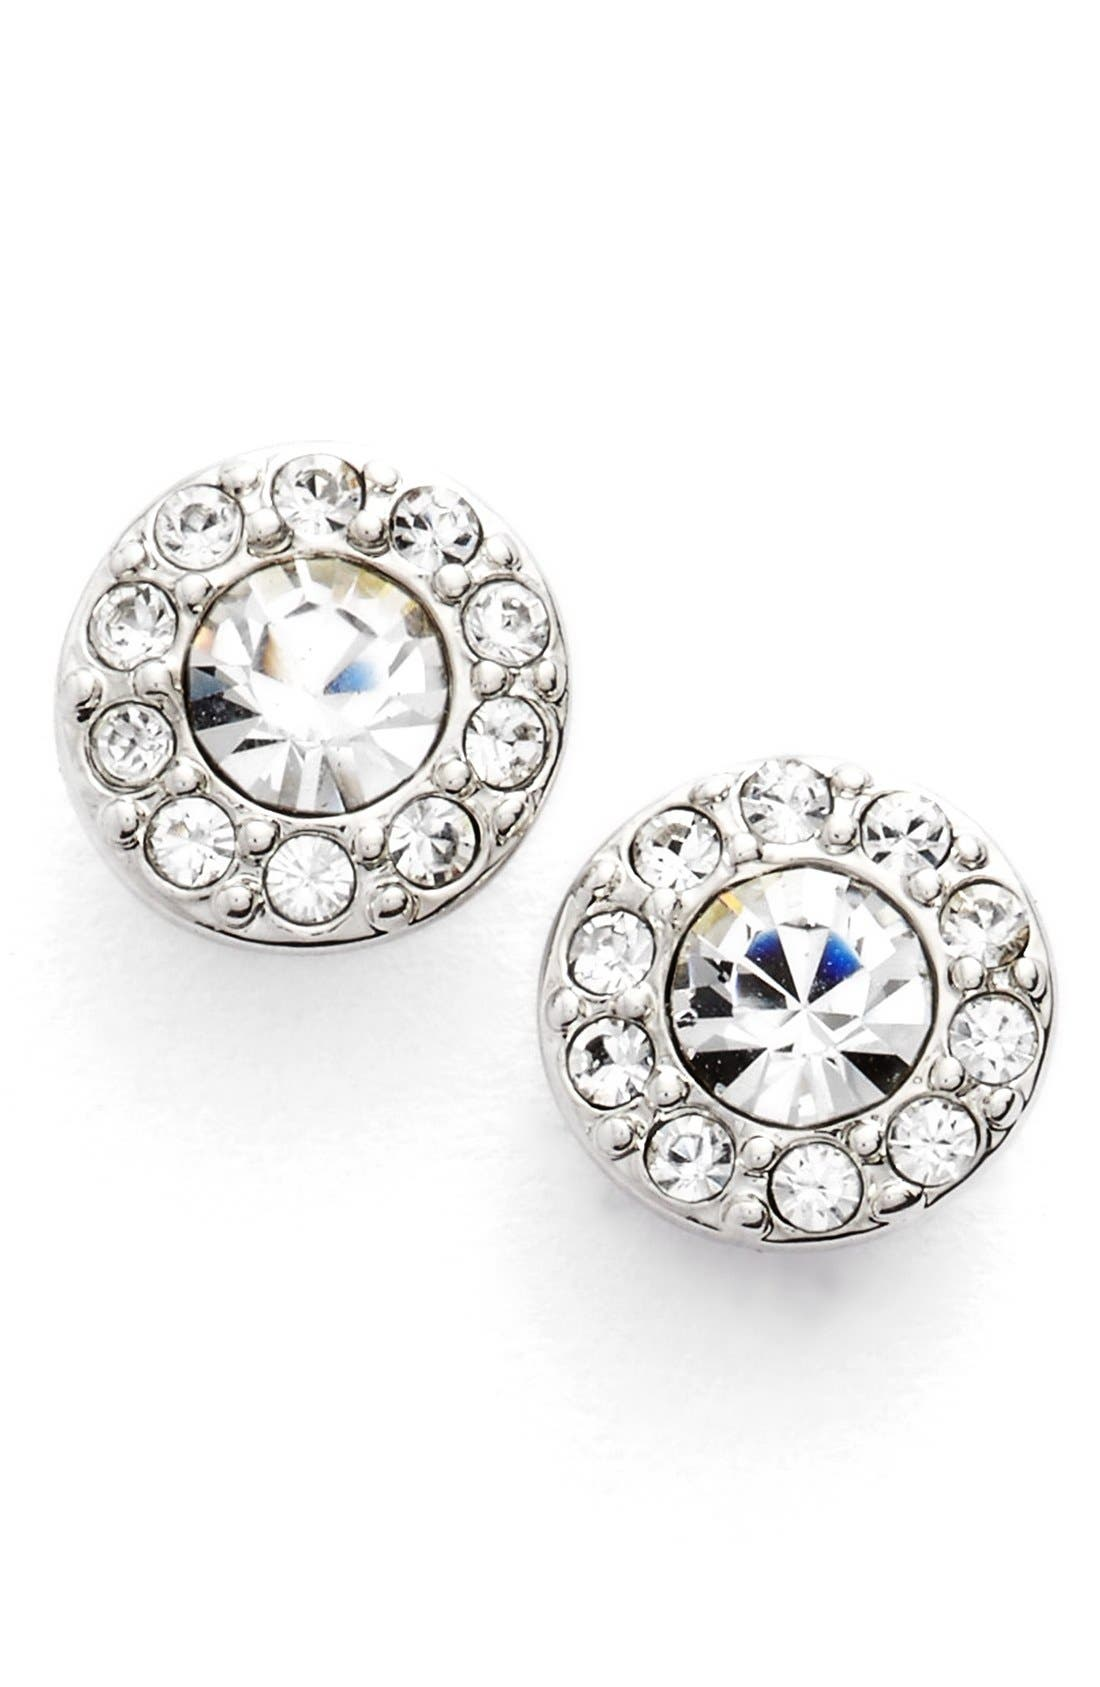 Givenchy Small Crystal Stud Earrings